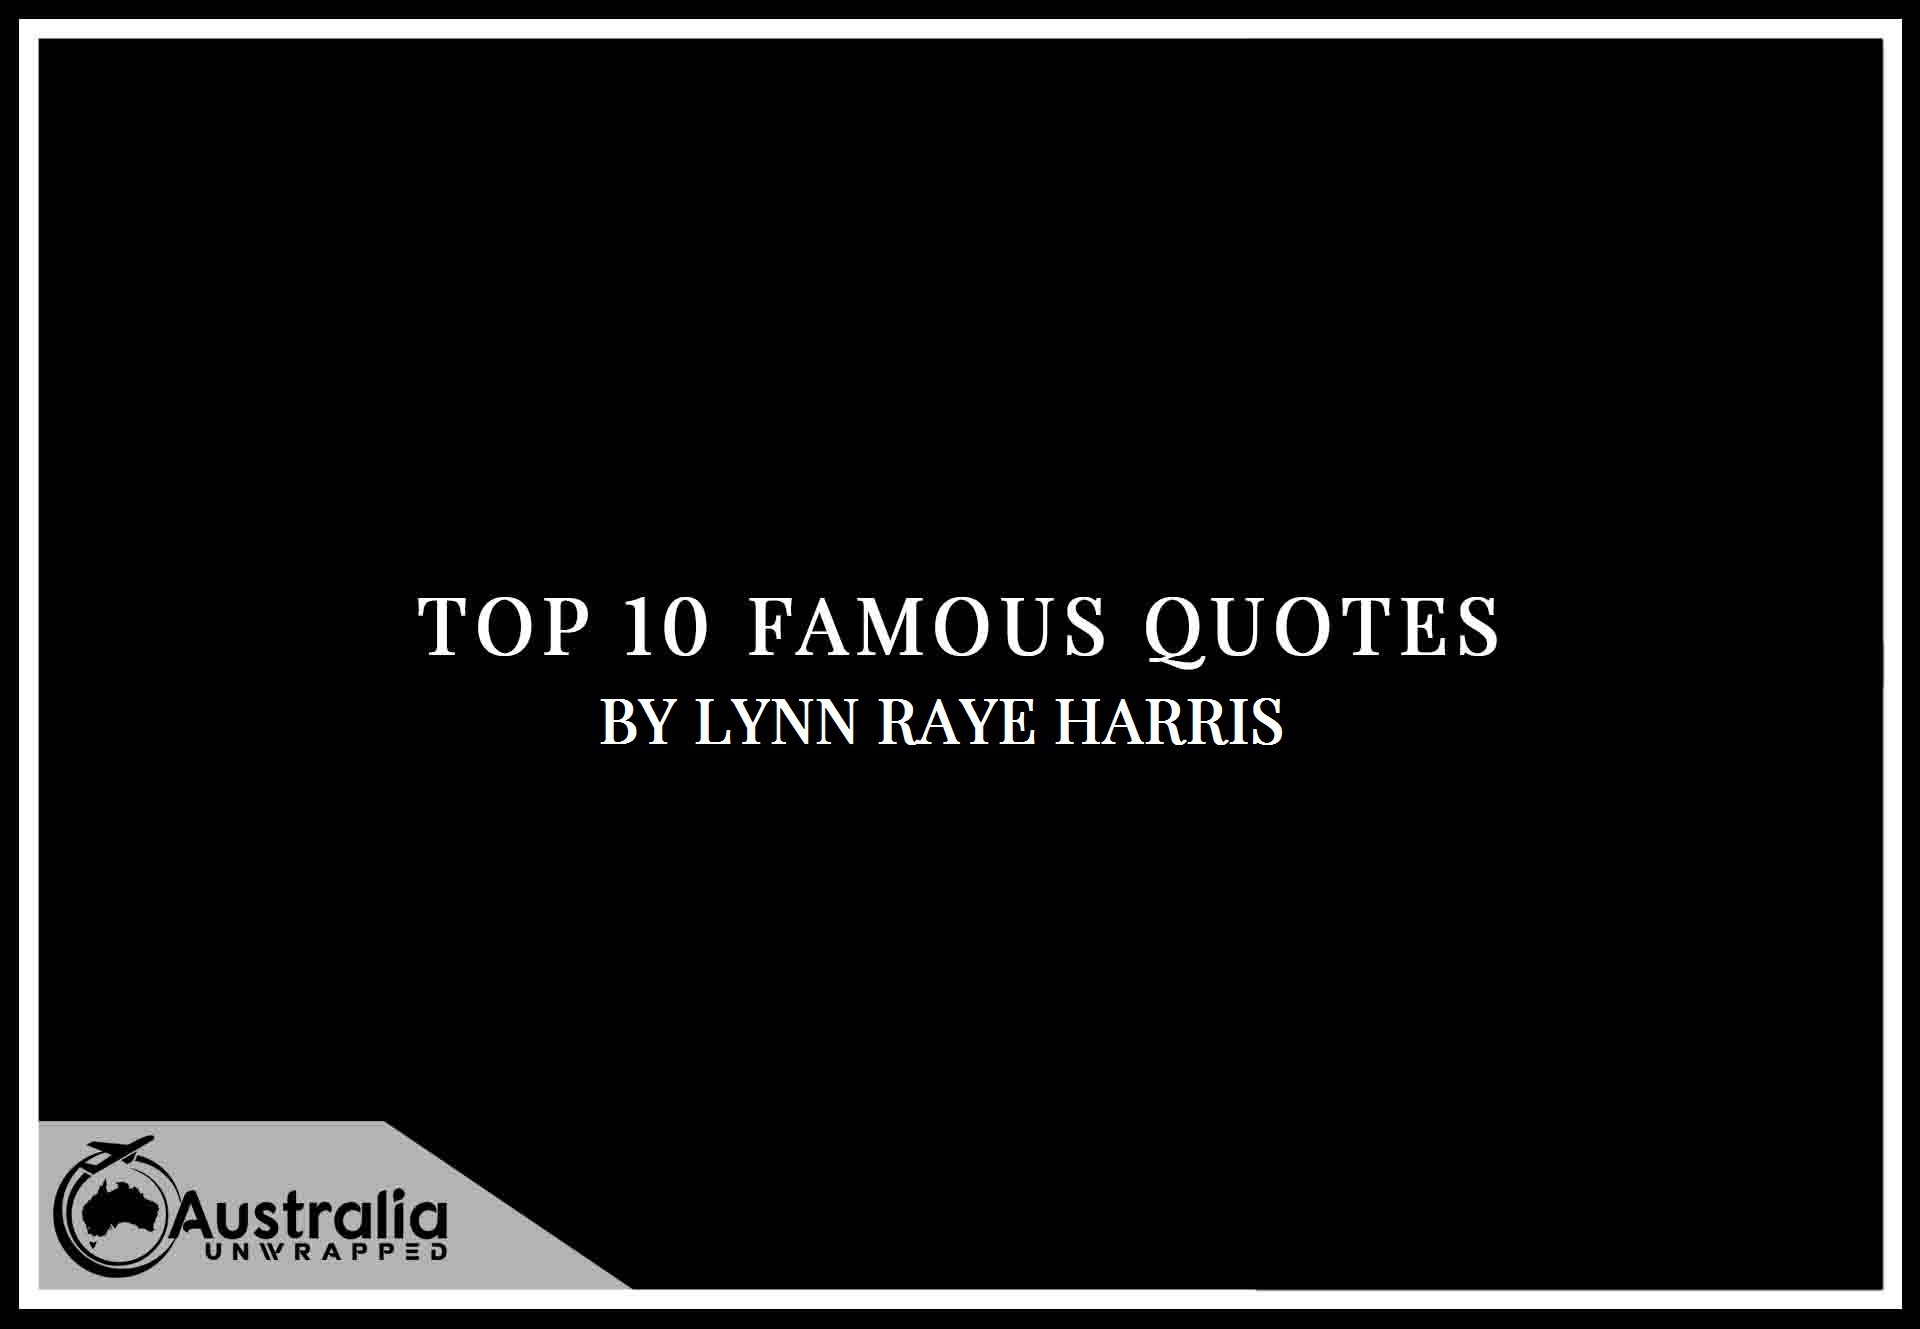 Lynn Raye Harris's Top 10 Popular and Famous Quotes